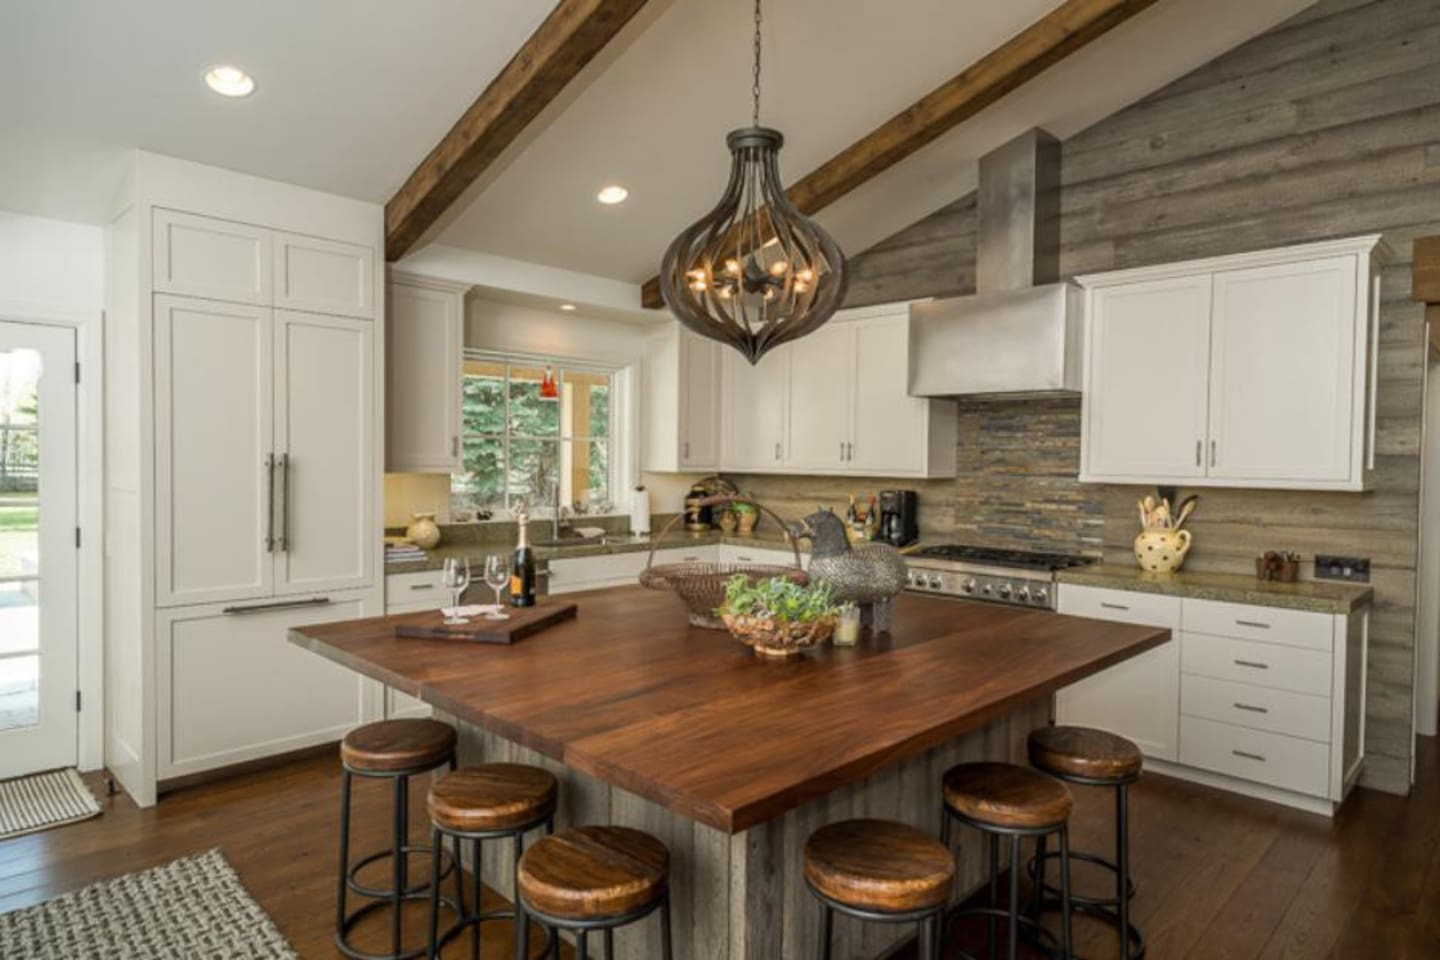 Kitchen with Island & Bar Seating.